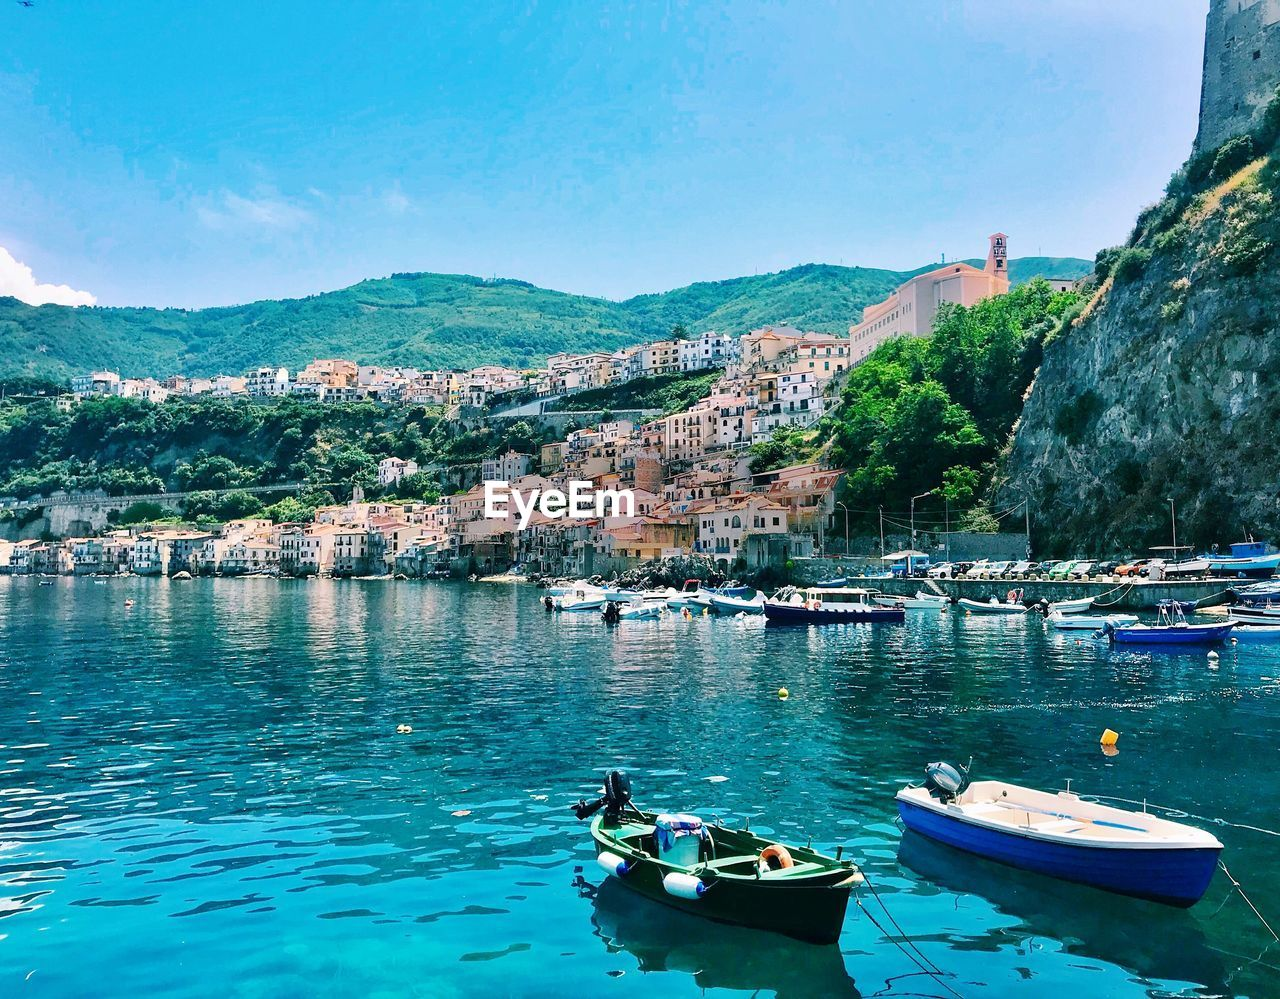 Sailboats moored in sea by townscape against sky